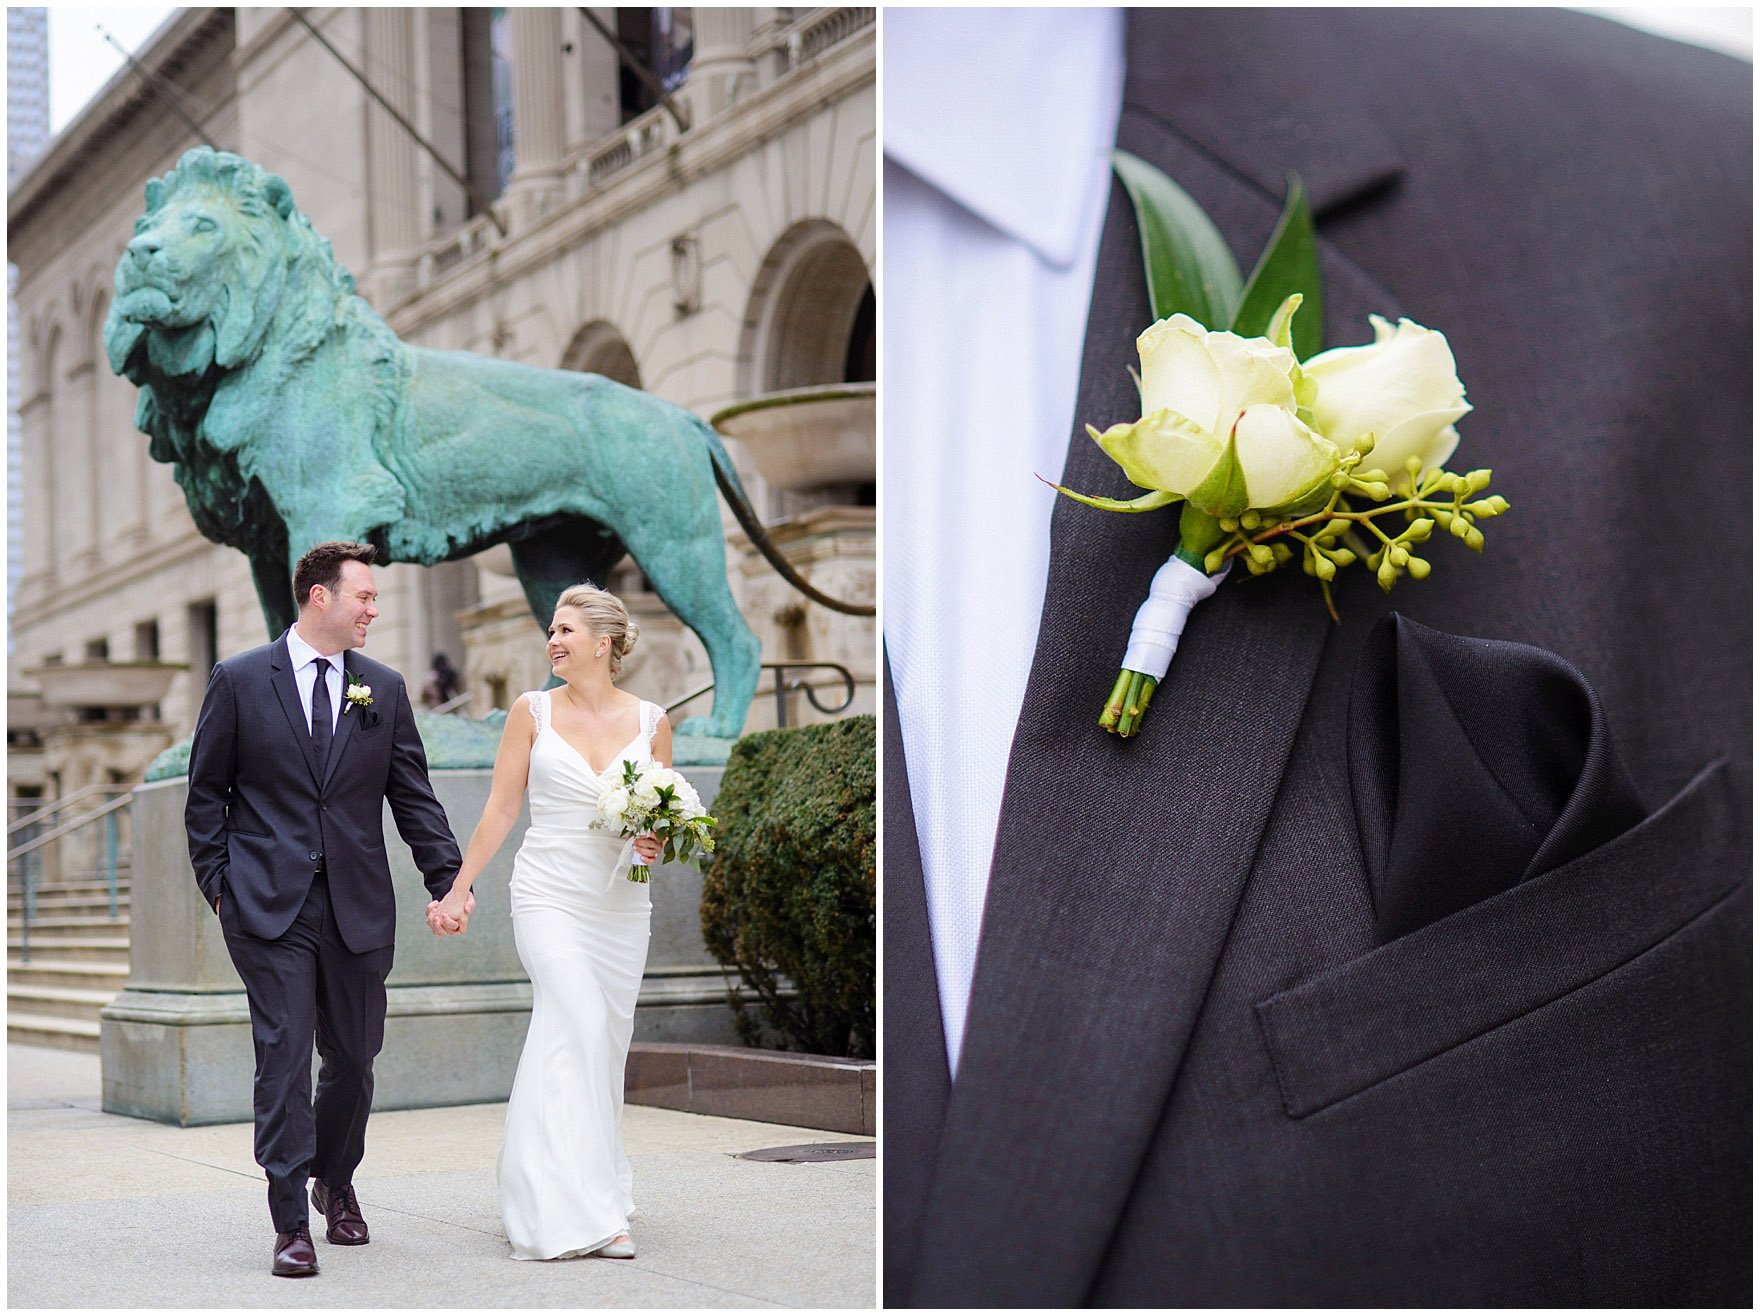 A bride and groom walk in front of the Art Institute of Chicago prior to an Ovation Chicago wedding.